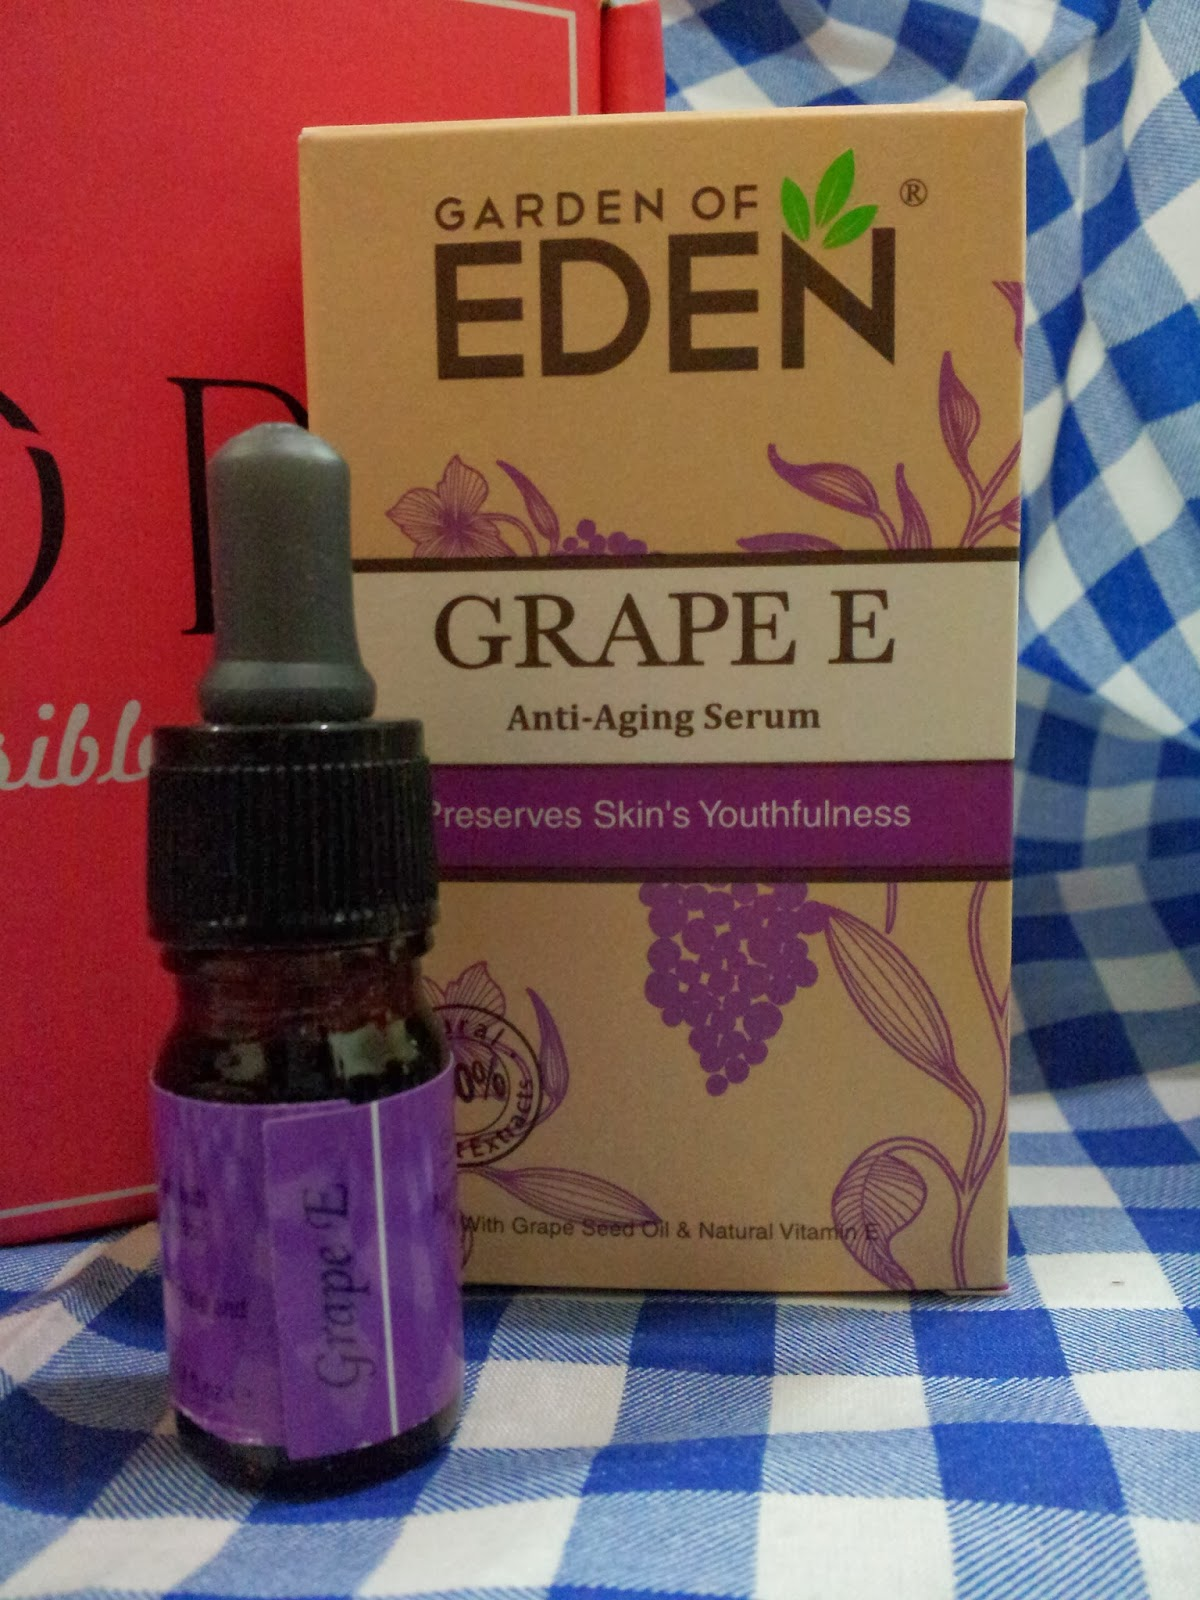 Princess Neverland: Garden Of Eden Grape E Anti Aging Serum